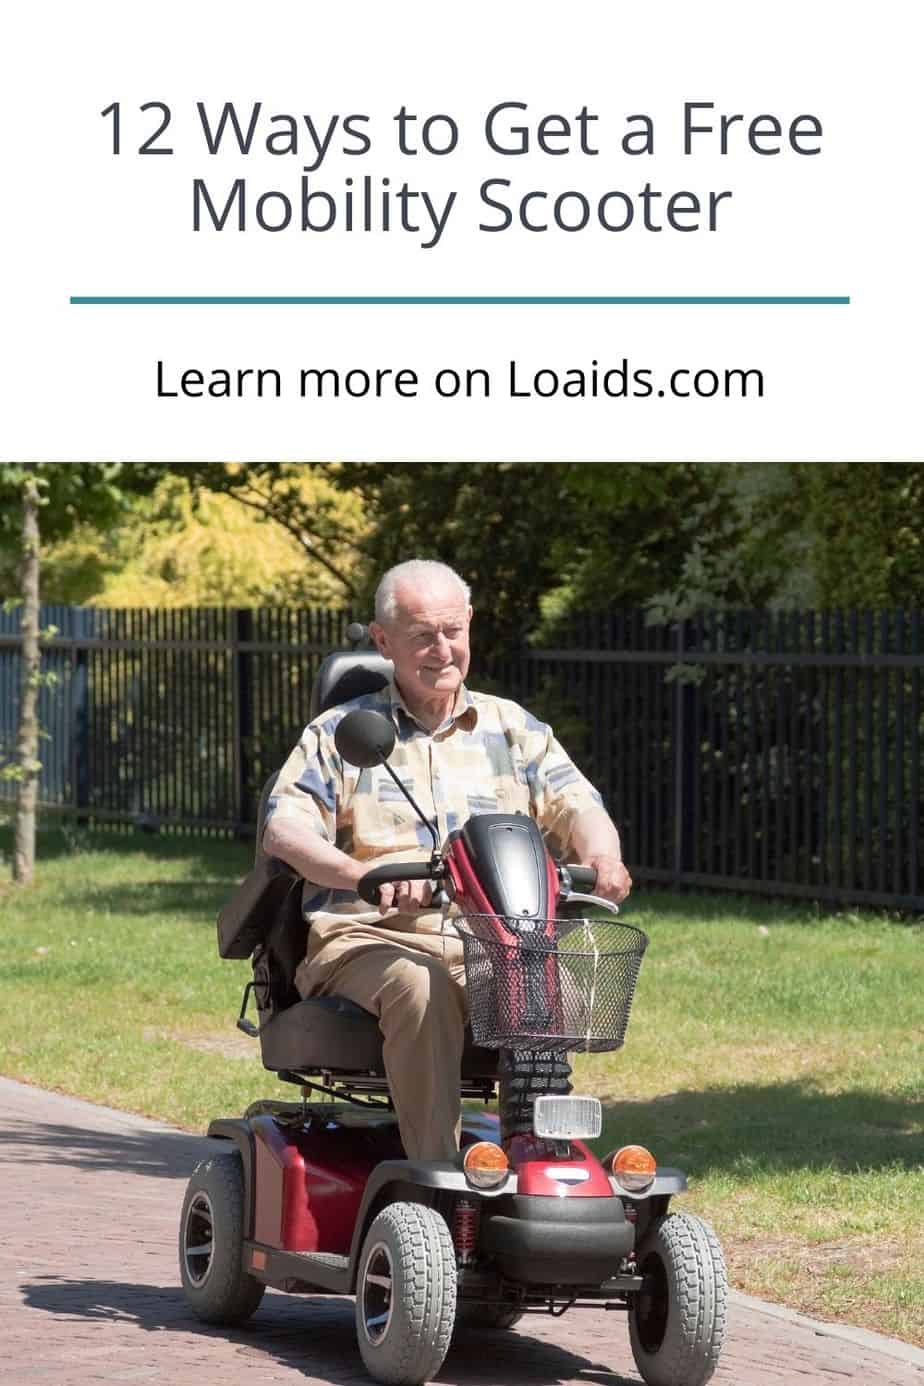 a senior man smiling while riding a free mobility scooter